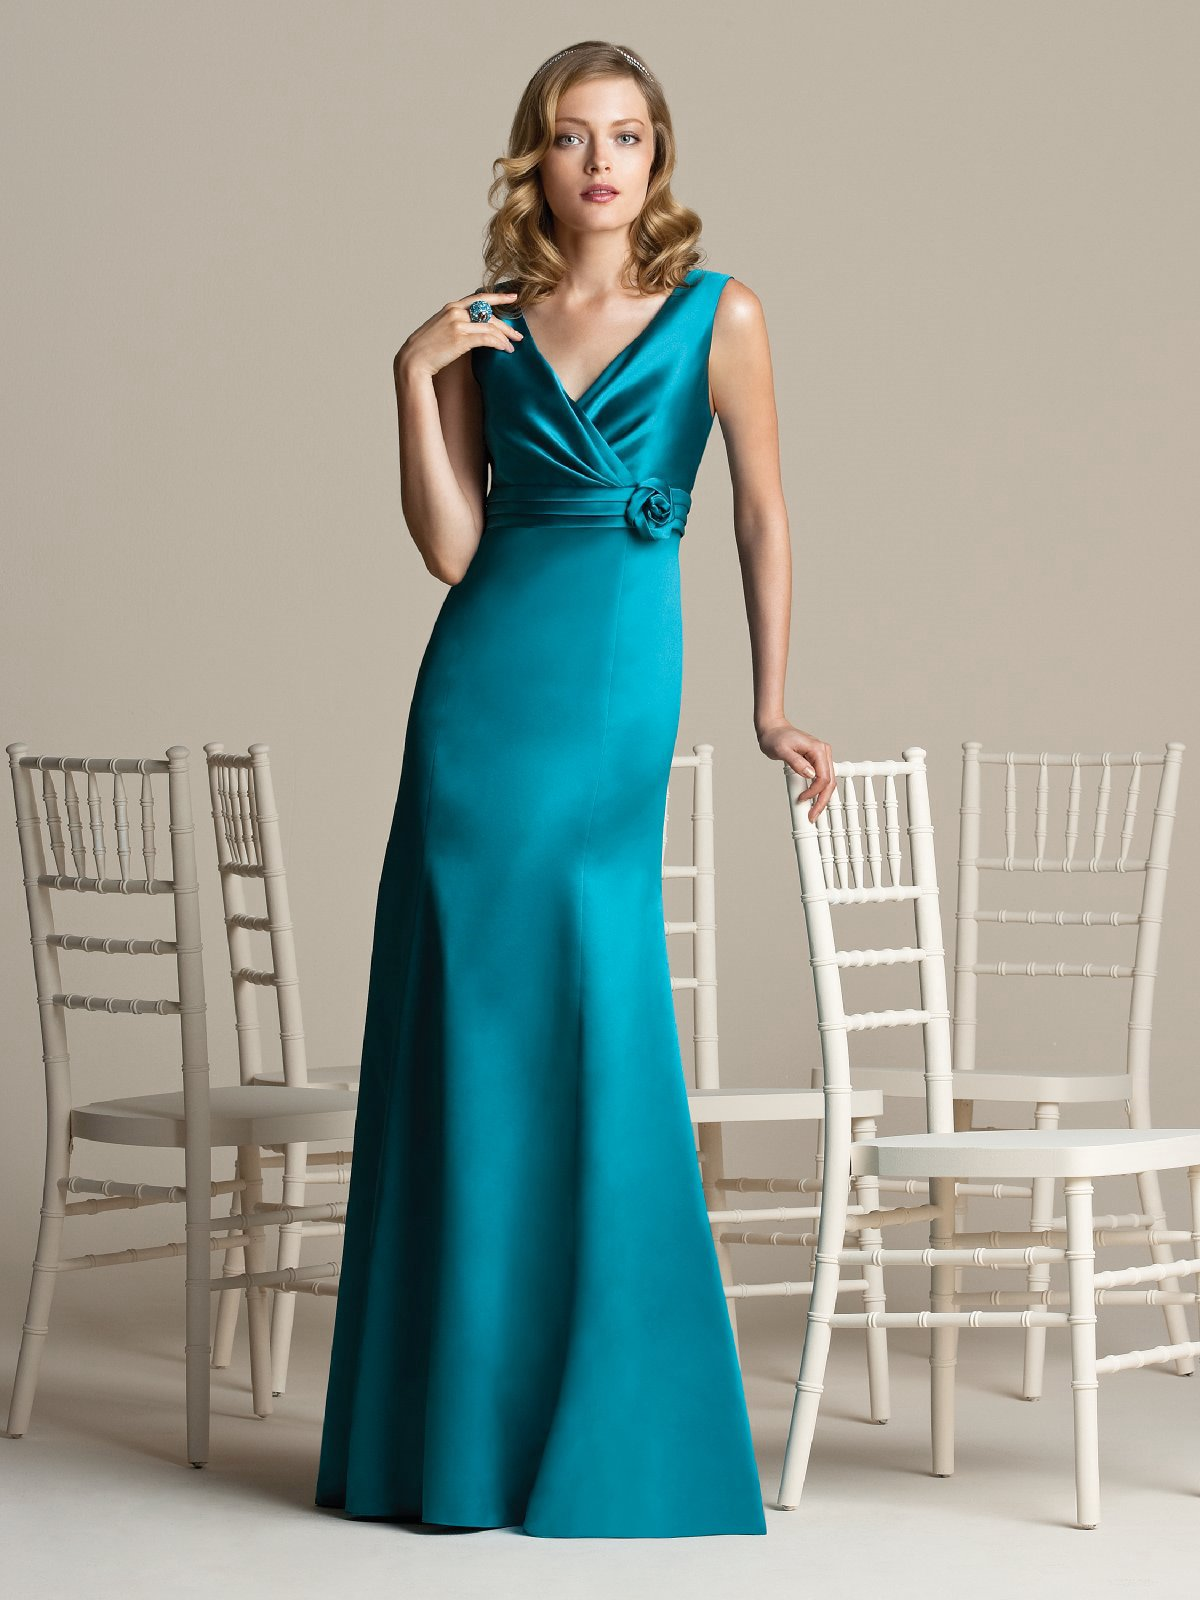 Teal A Line V Neck And Sleeveless Zipper Floor Length Satin Prom Dresses With Belt